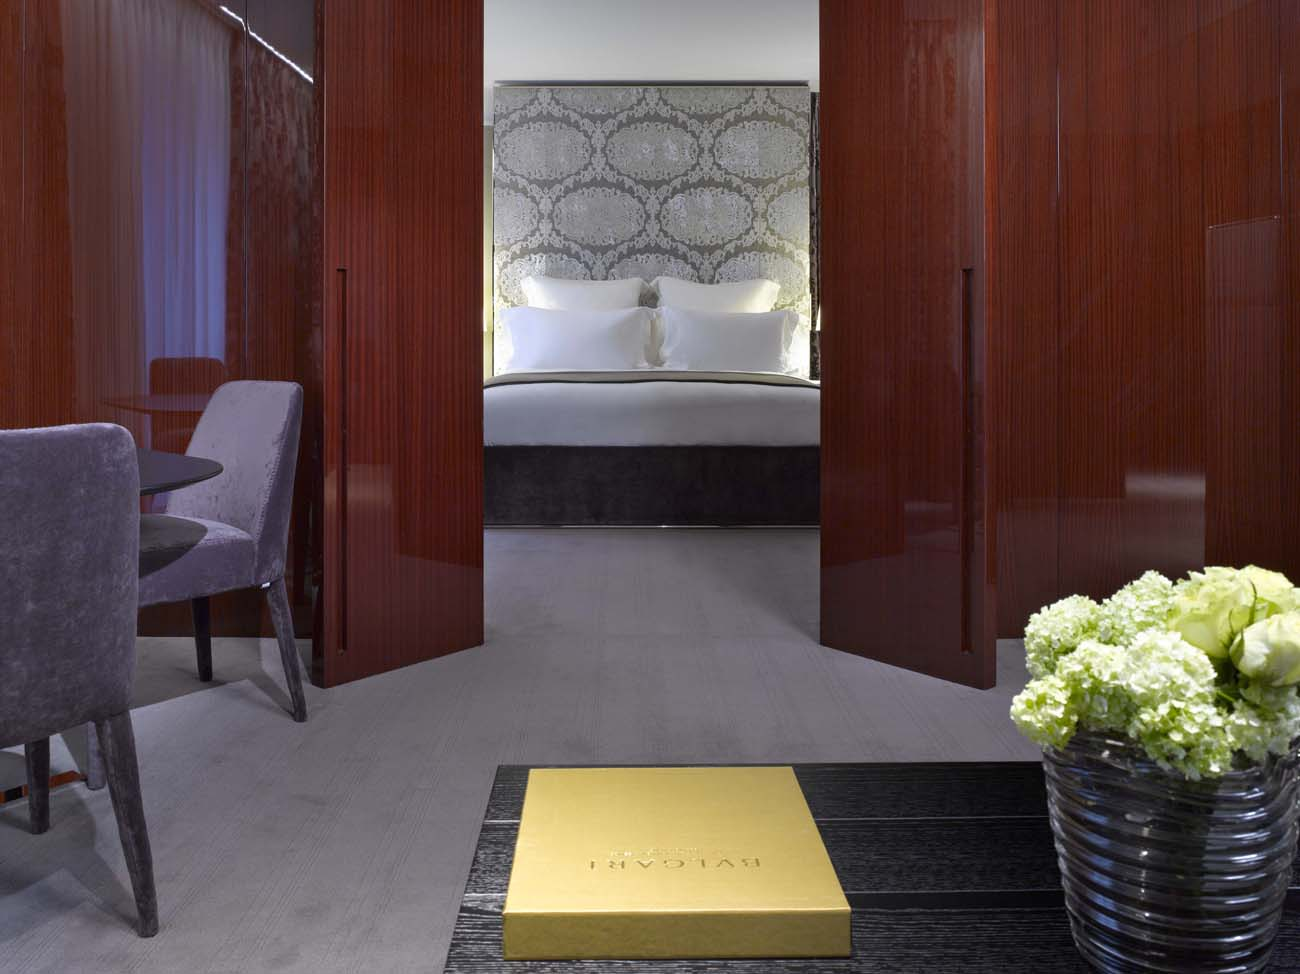 Bulgari Hotel and Residencies, Knightsbridge, London.